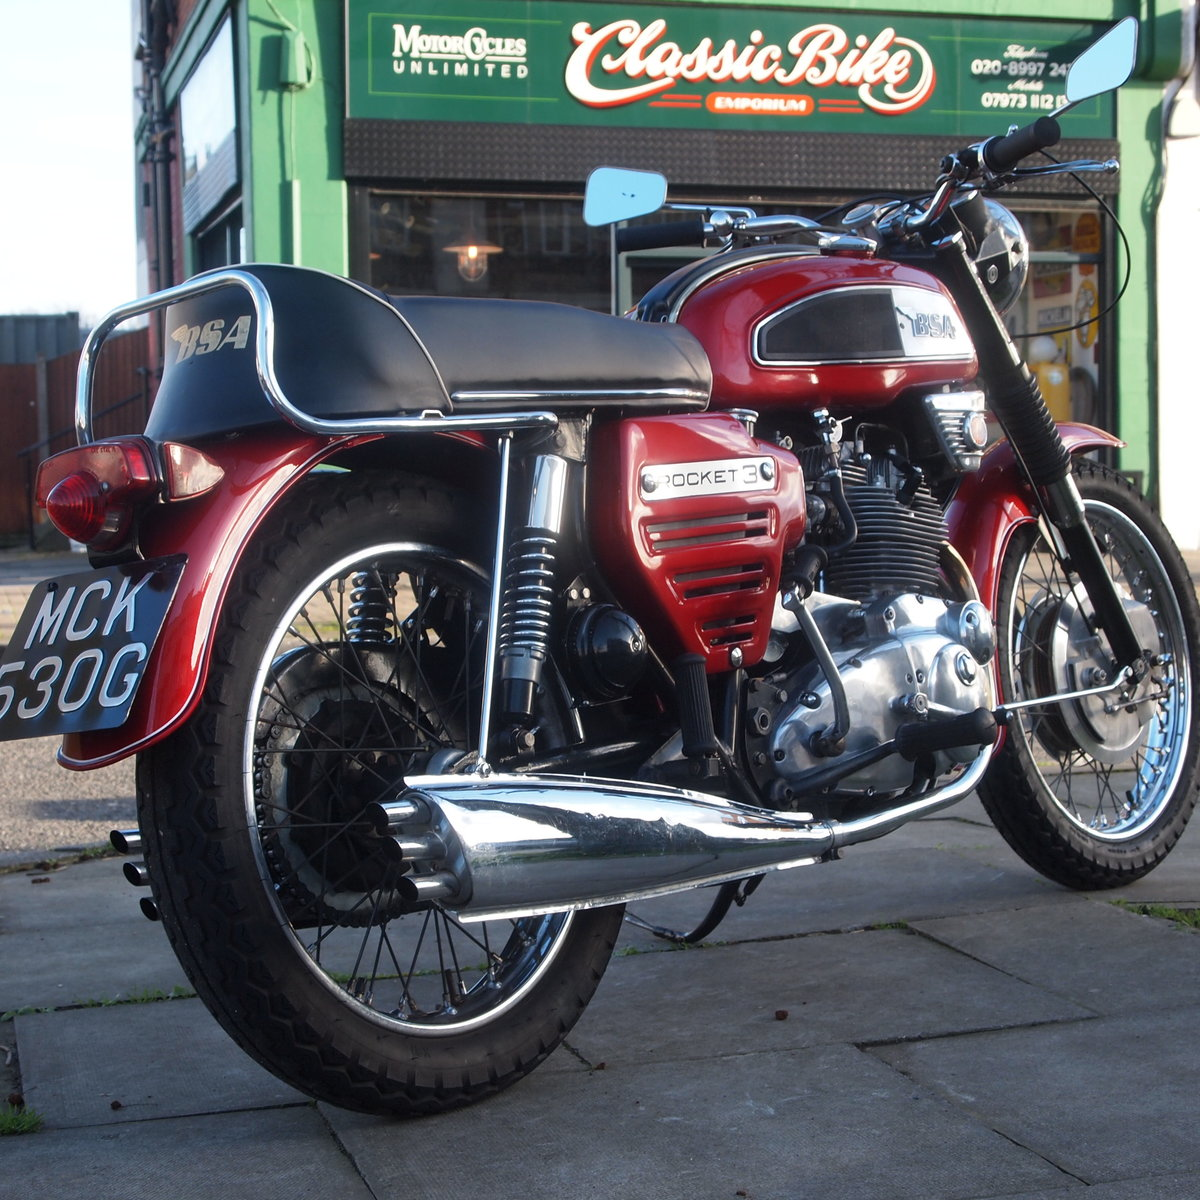 1969 BSA Rocket 3 with Electric Start, Early 1968 Model. For Sale (picture 1 of 6)